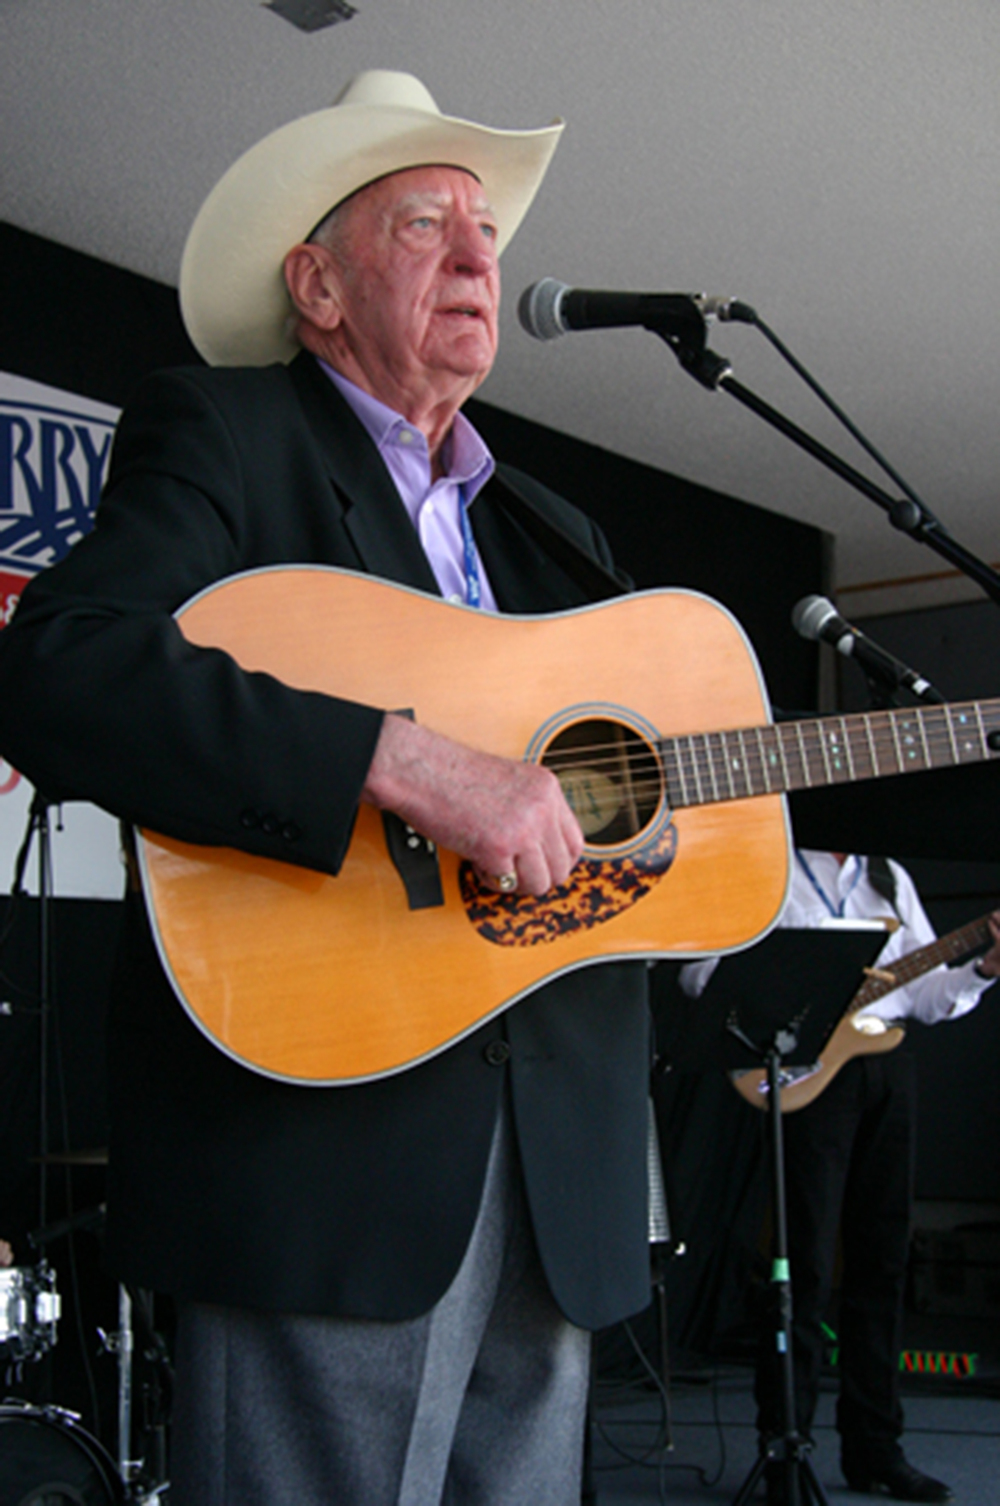 2011 - Bev Munro - Canadian Country Music Legends